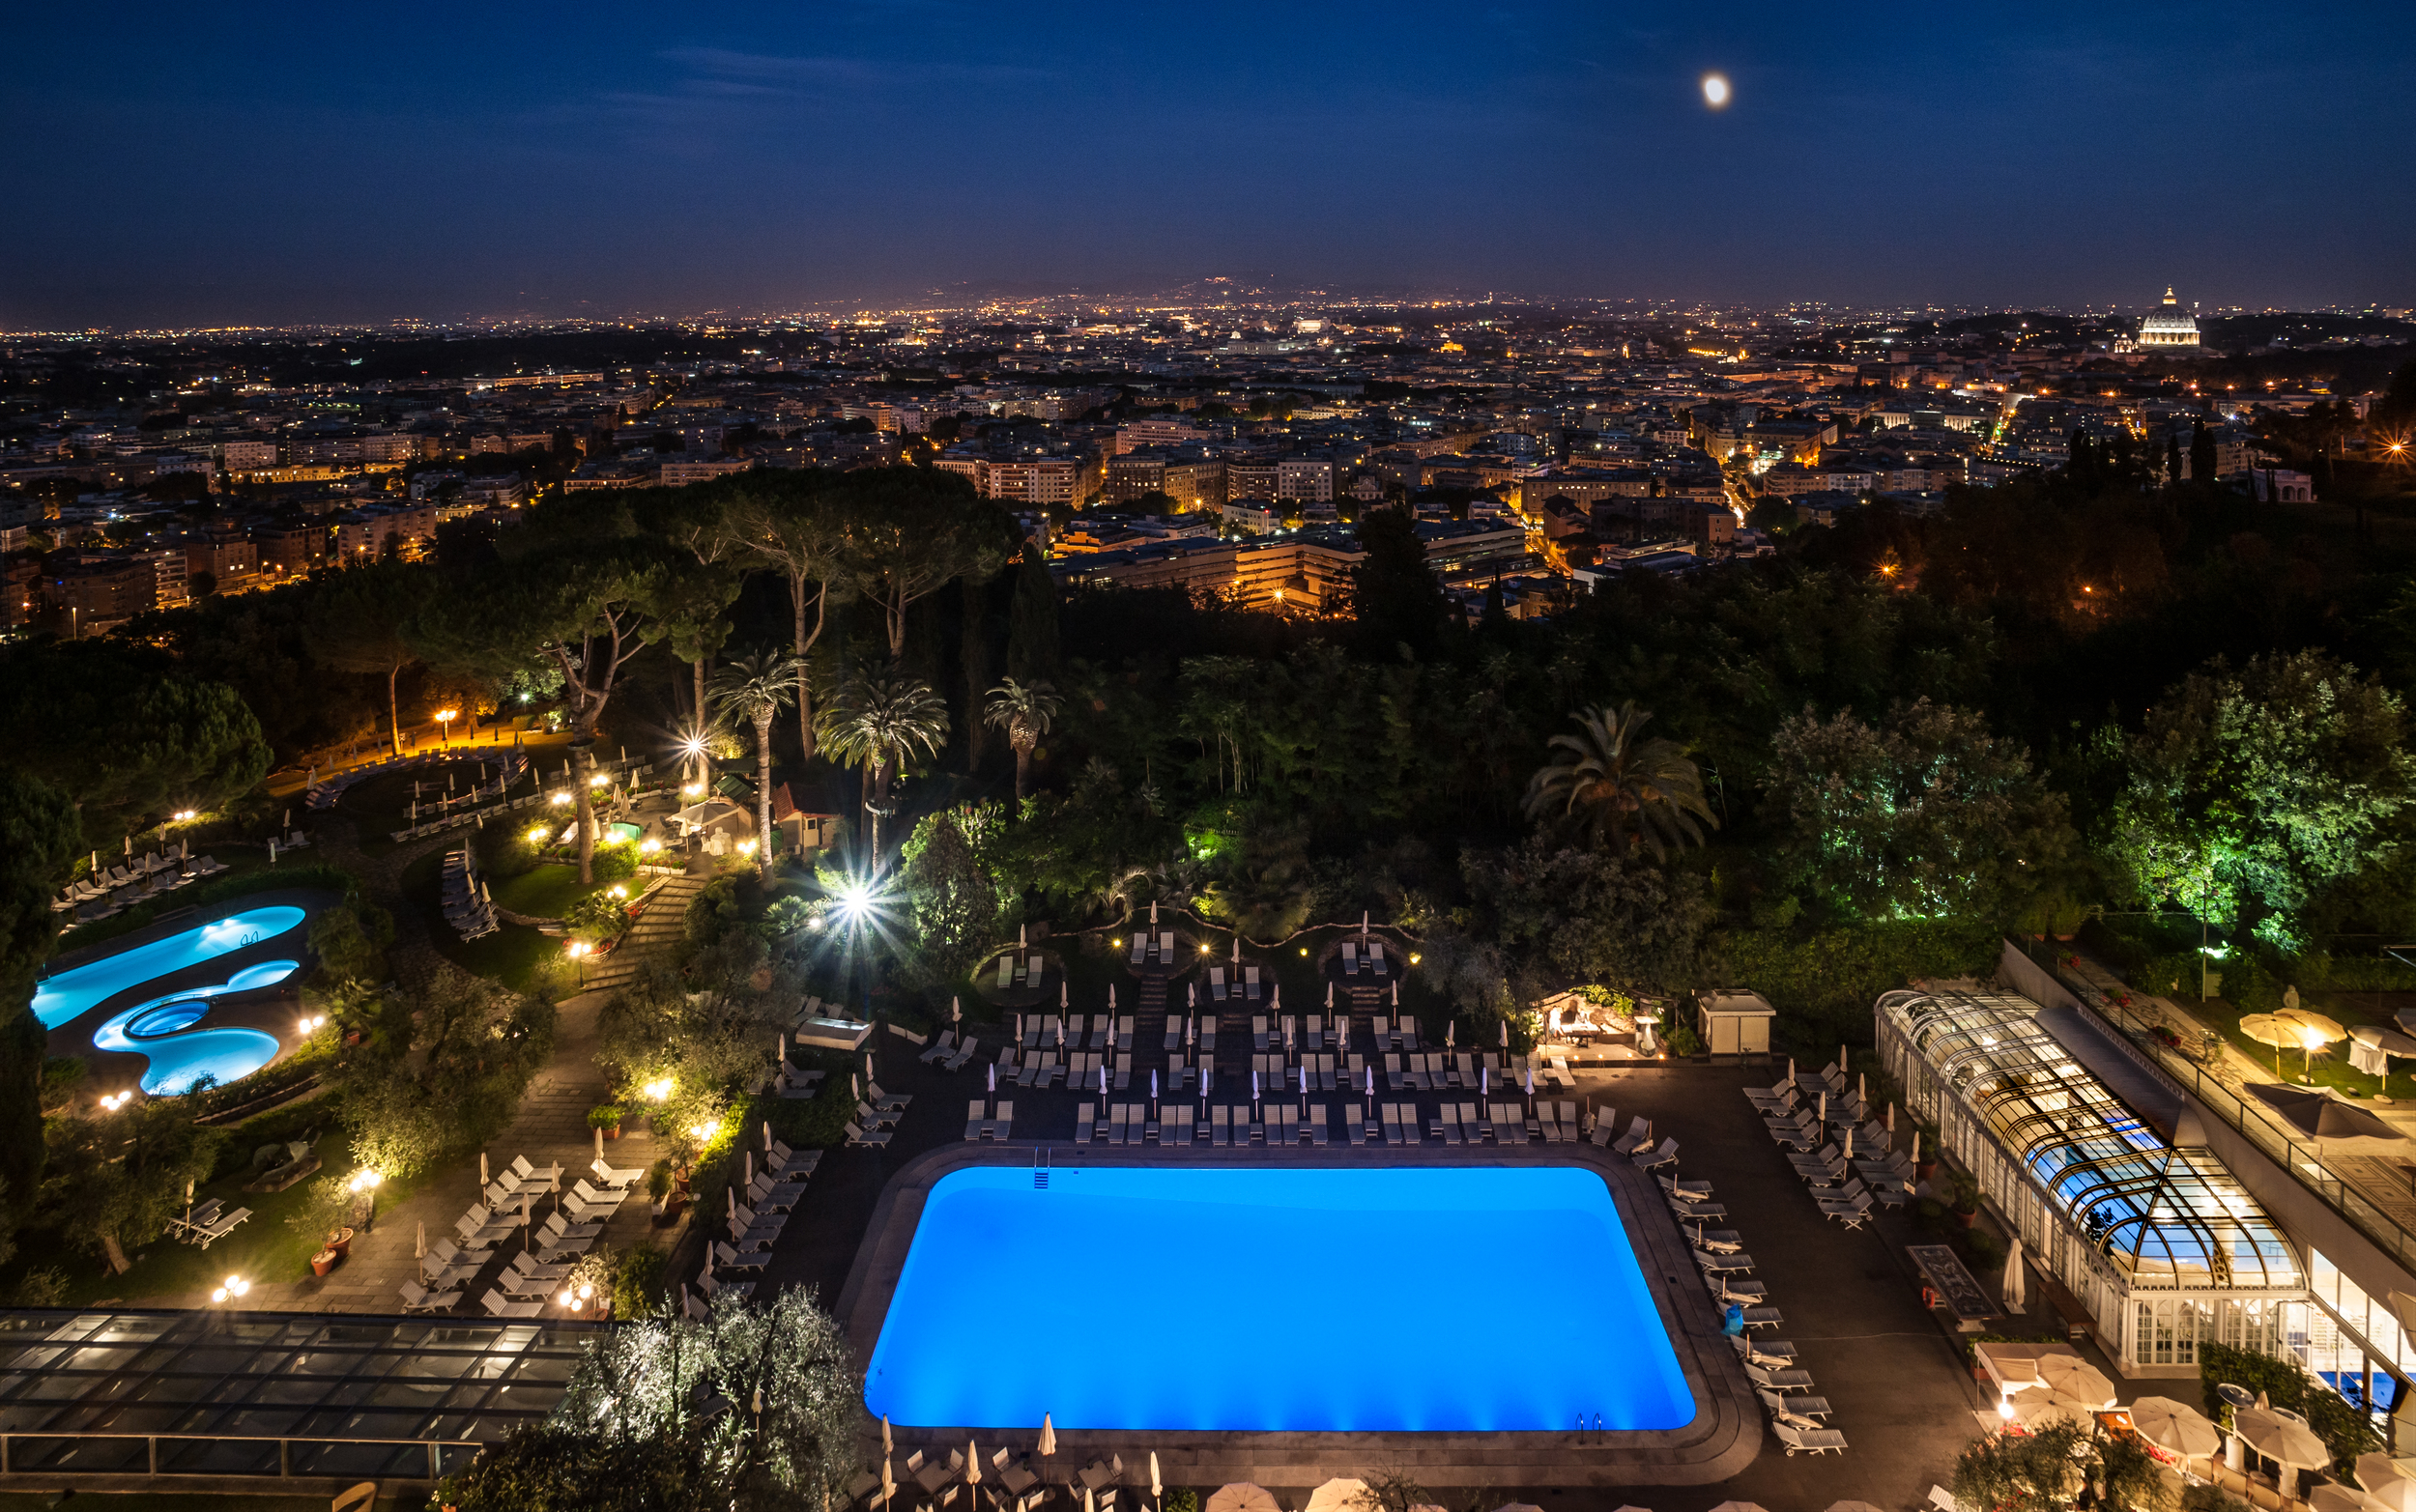 The outdoor pools at night